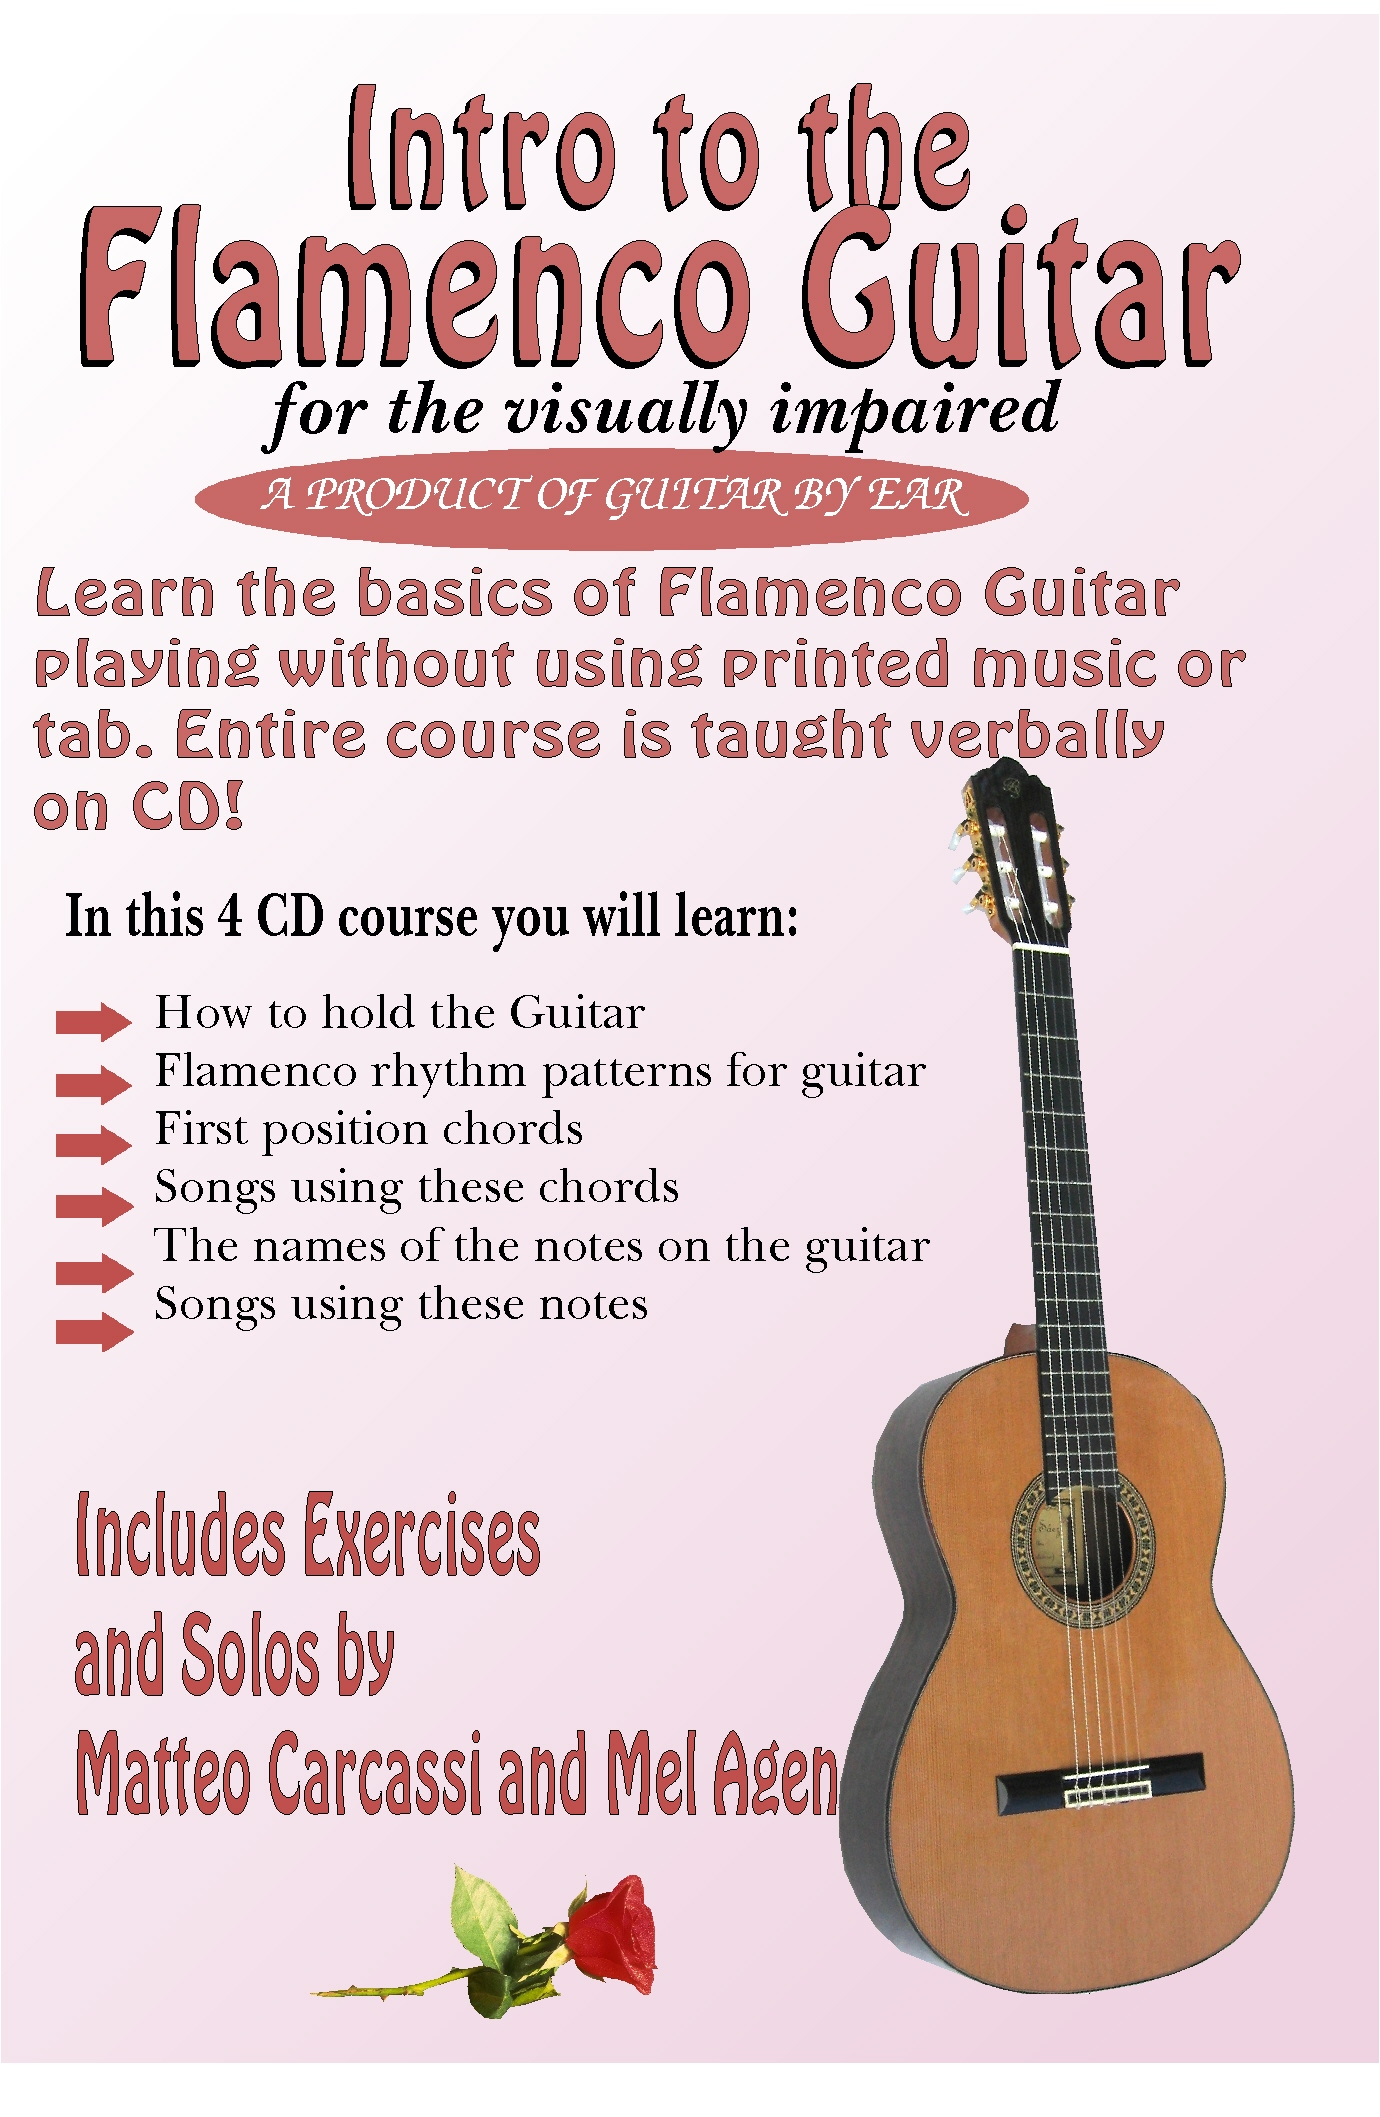 Intro to the Flamenco Guitar